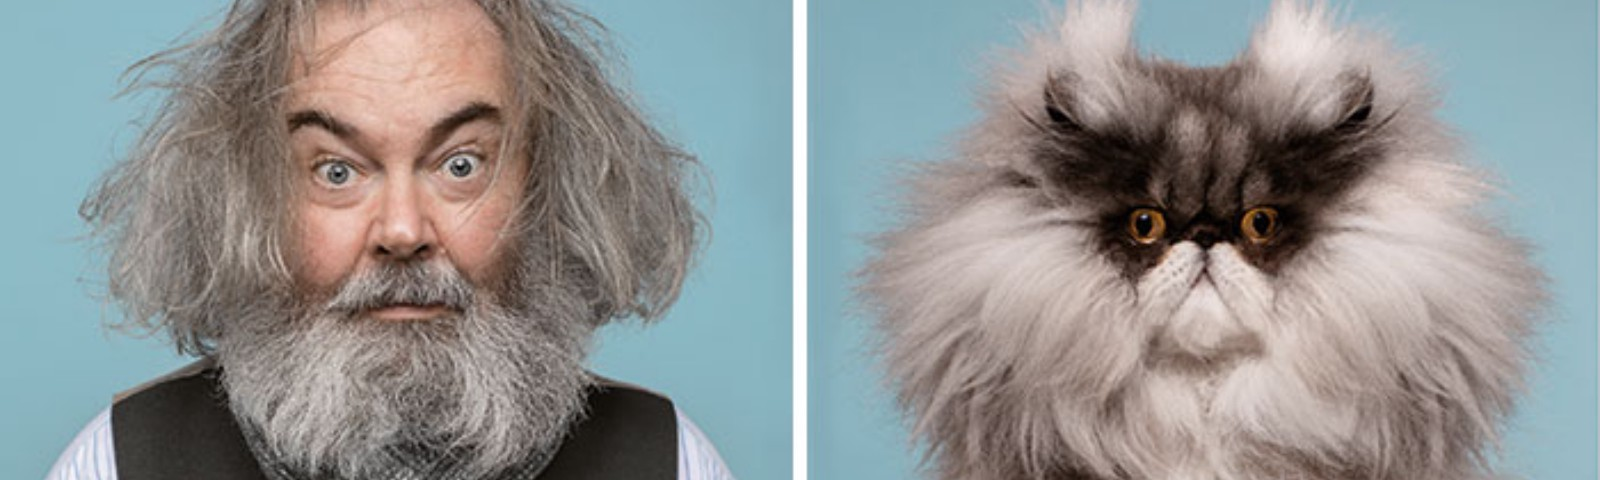 On the left, an older gentleman with unkempt hair and a gray scarf; on right, a gray and black cat with a similar expression